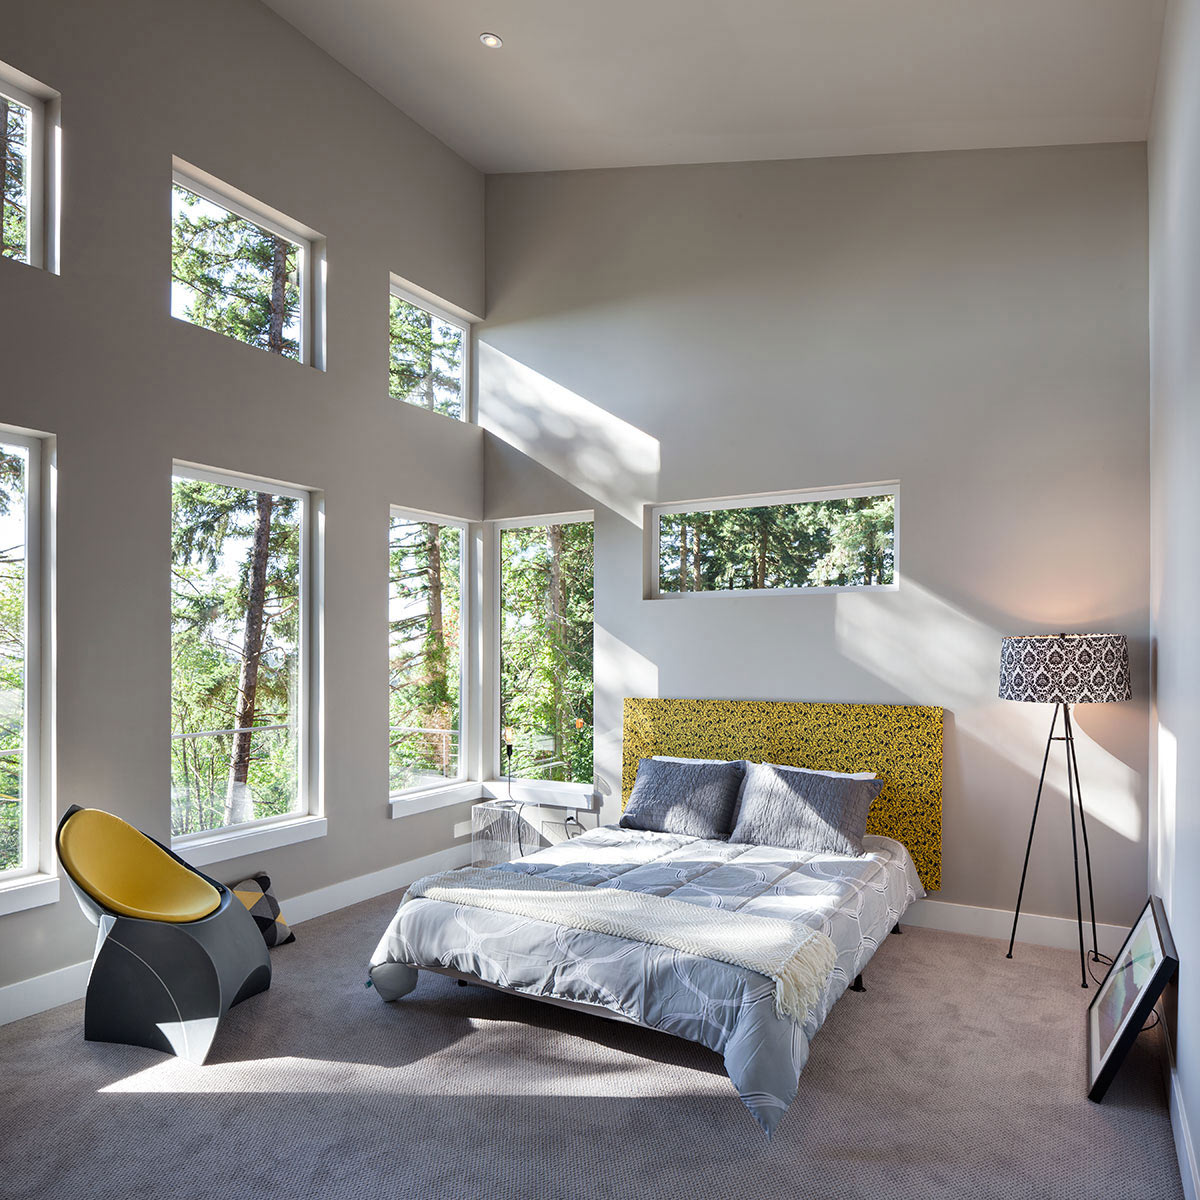 Bedroom, Modern Home in Eugene, Oregon by Jordan Iverson Signature Homes